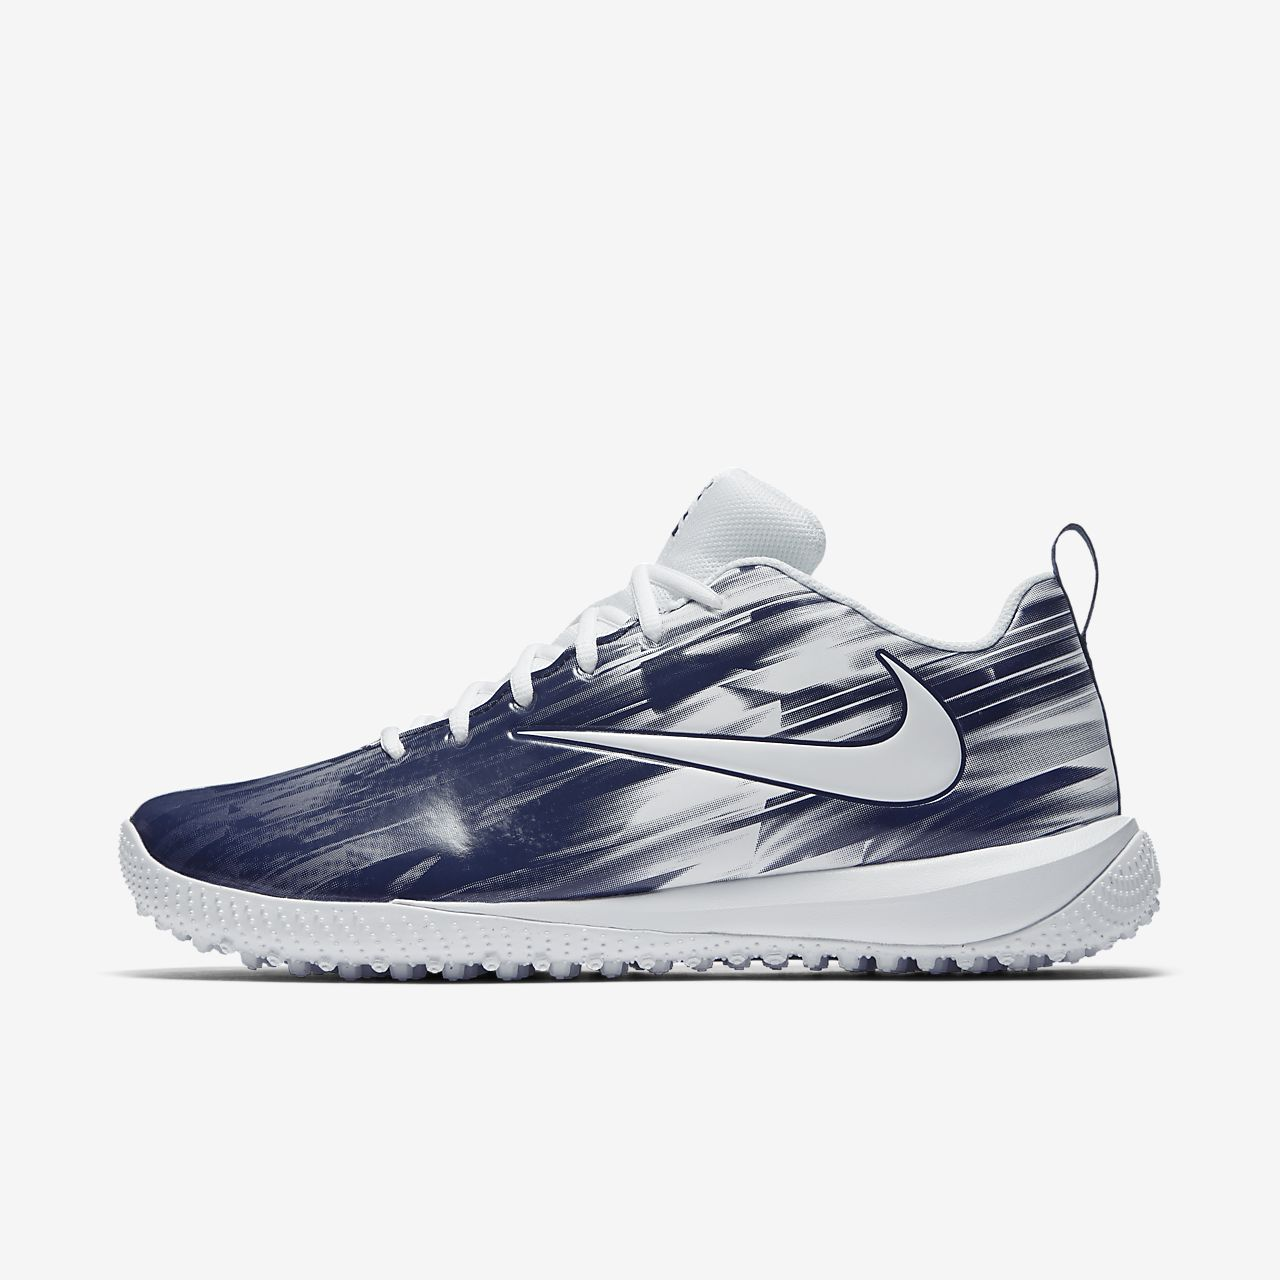 nike shoes new model arrivals lax today 850266